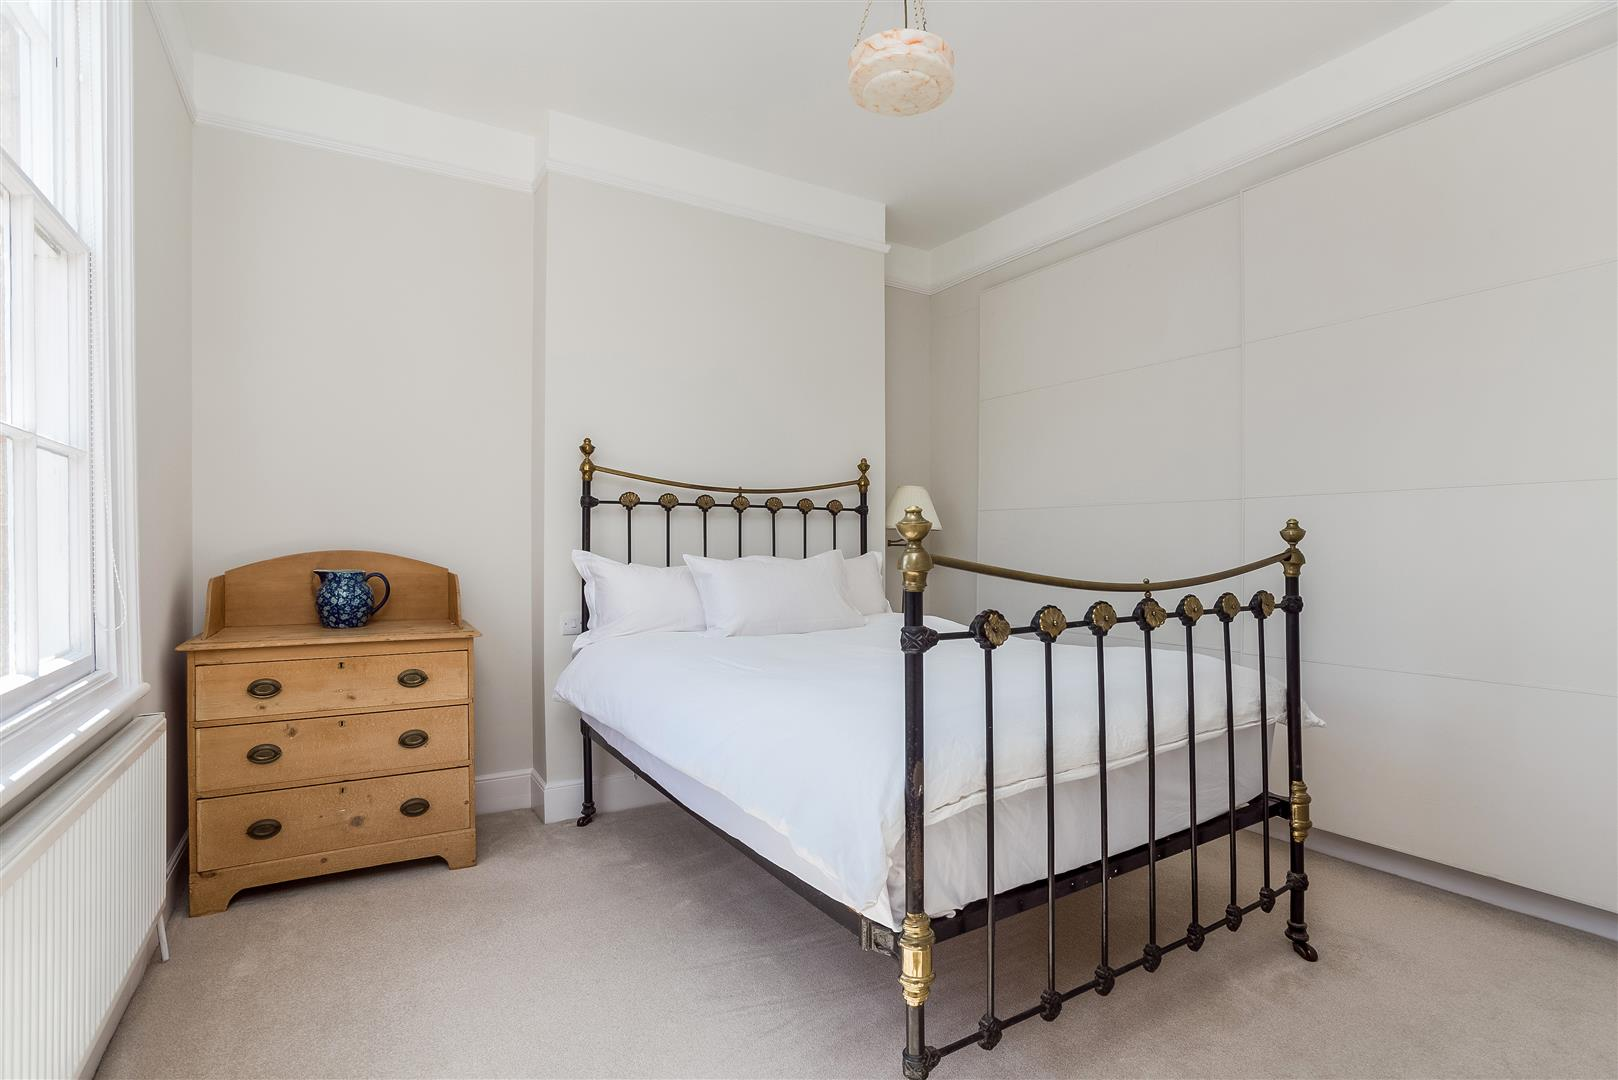 5 bedroom town house for sale in leamington spa